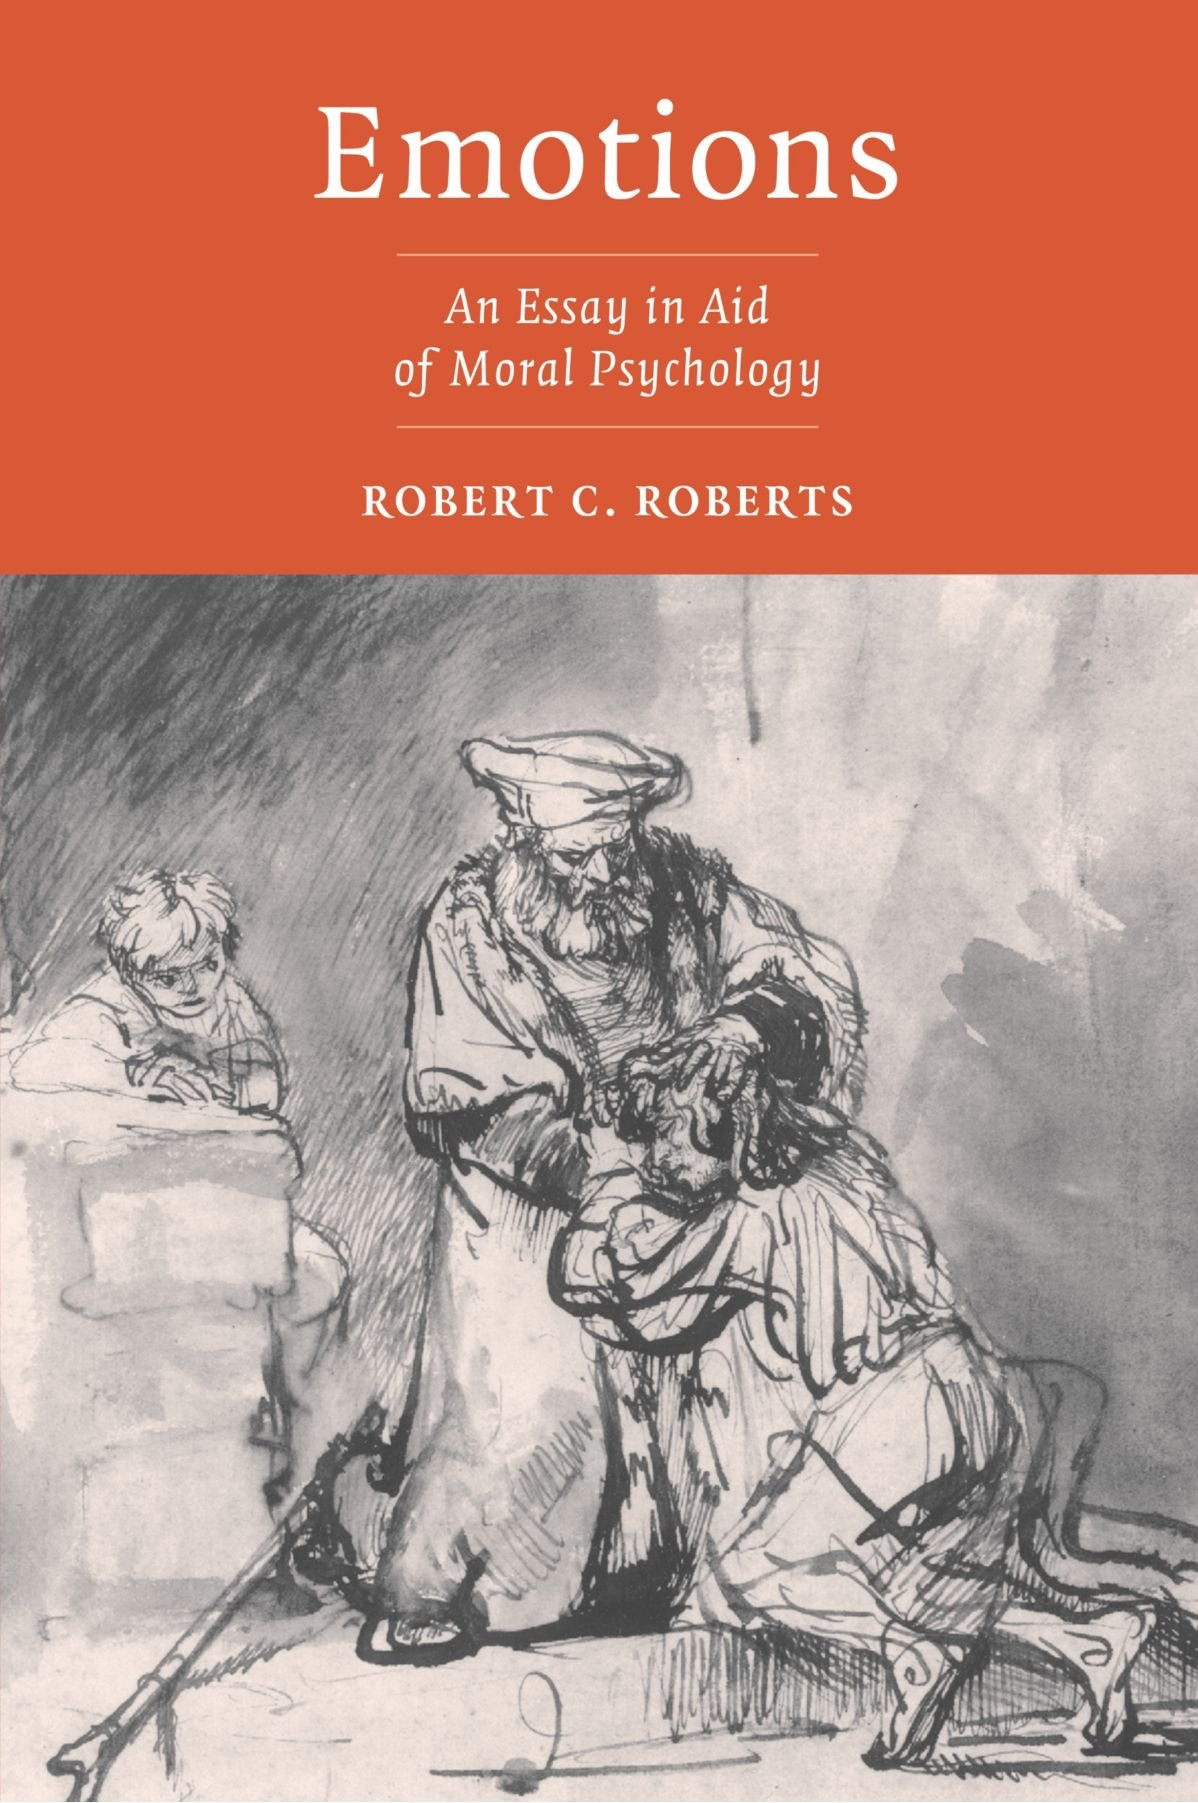 emotions an essay in aid of moral psychology robert c roberts emotions an essay in aid of moral psychology robert c roberts 9780521525848 com books